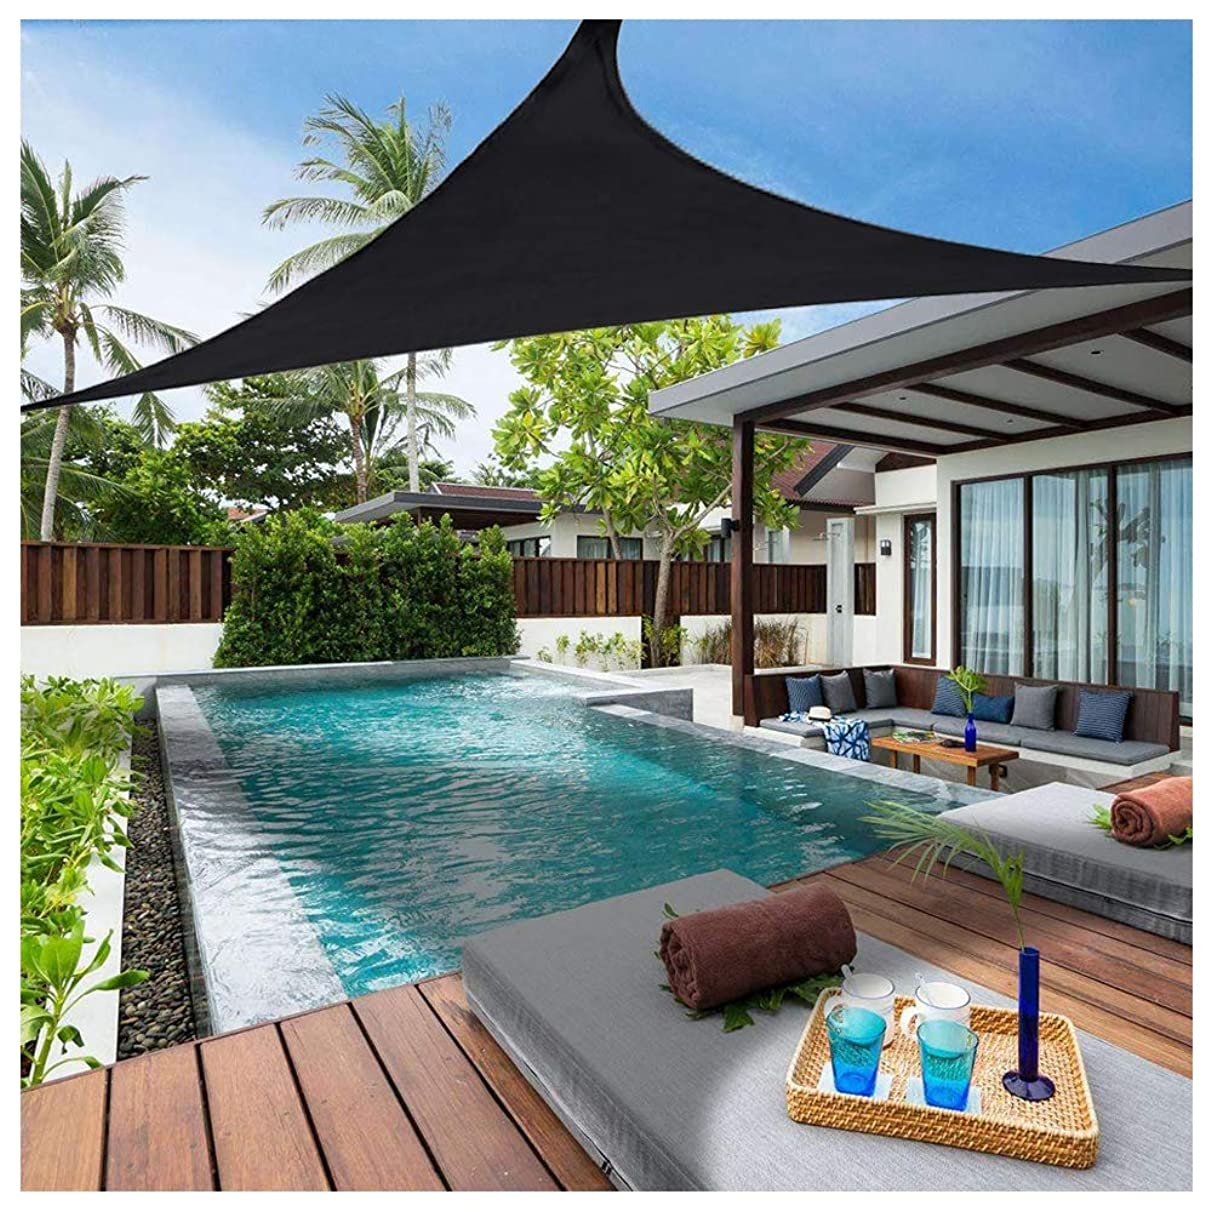 Awnings 6.'x 6.'x6.' Shade Sail Garden 95% Uv Protection Triangle Waterproof Mold Proof for Garden Pool Terrace Custom Size